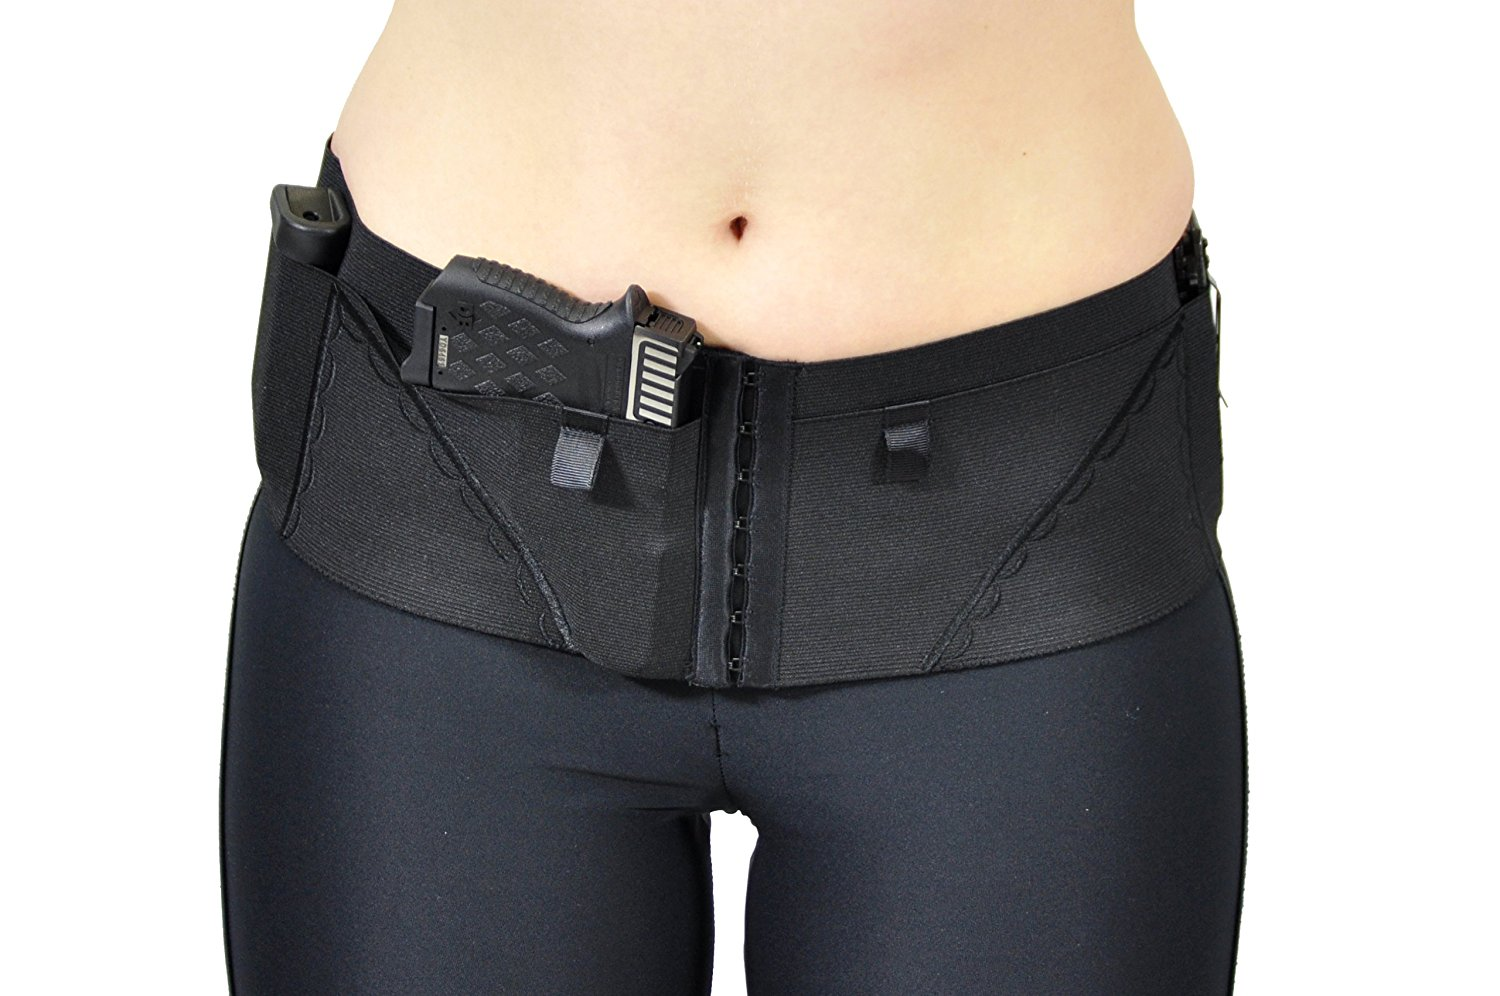 Top 5 Best Belly Band Holsters: Belly Band Concealment ...